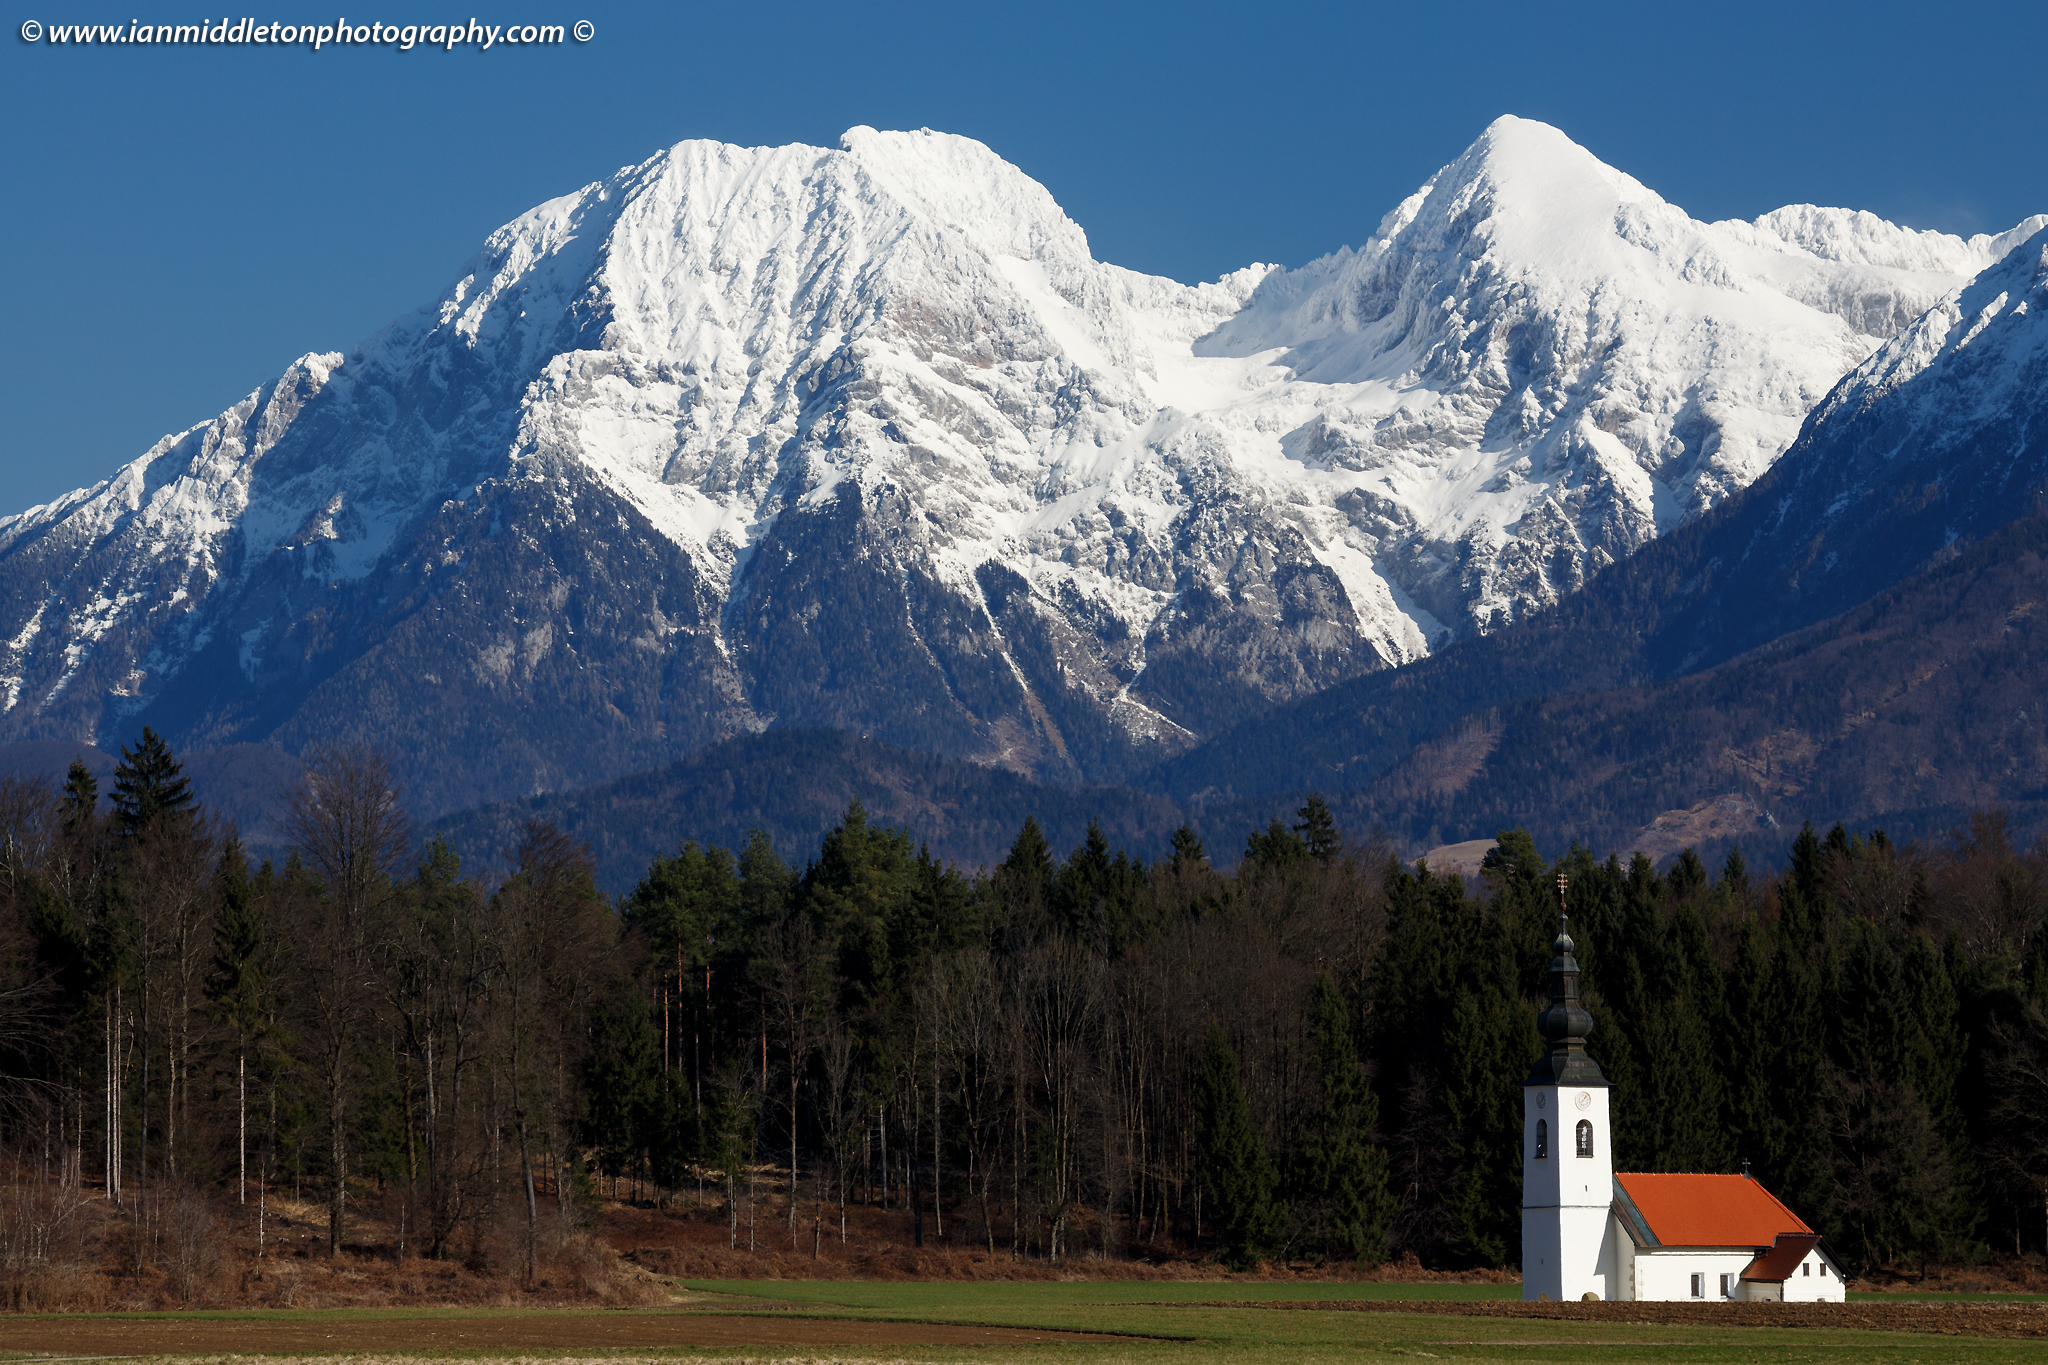 The church of Saint James in the little village of Hrase, near Medvode in Gorenjska, Slovenia, with the snowcapped Kamnik Alps behind.